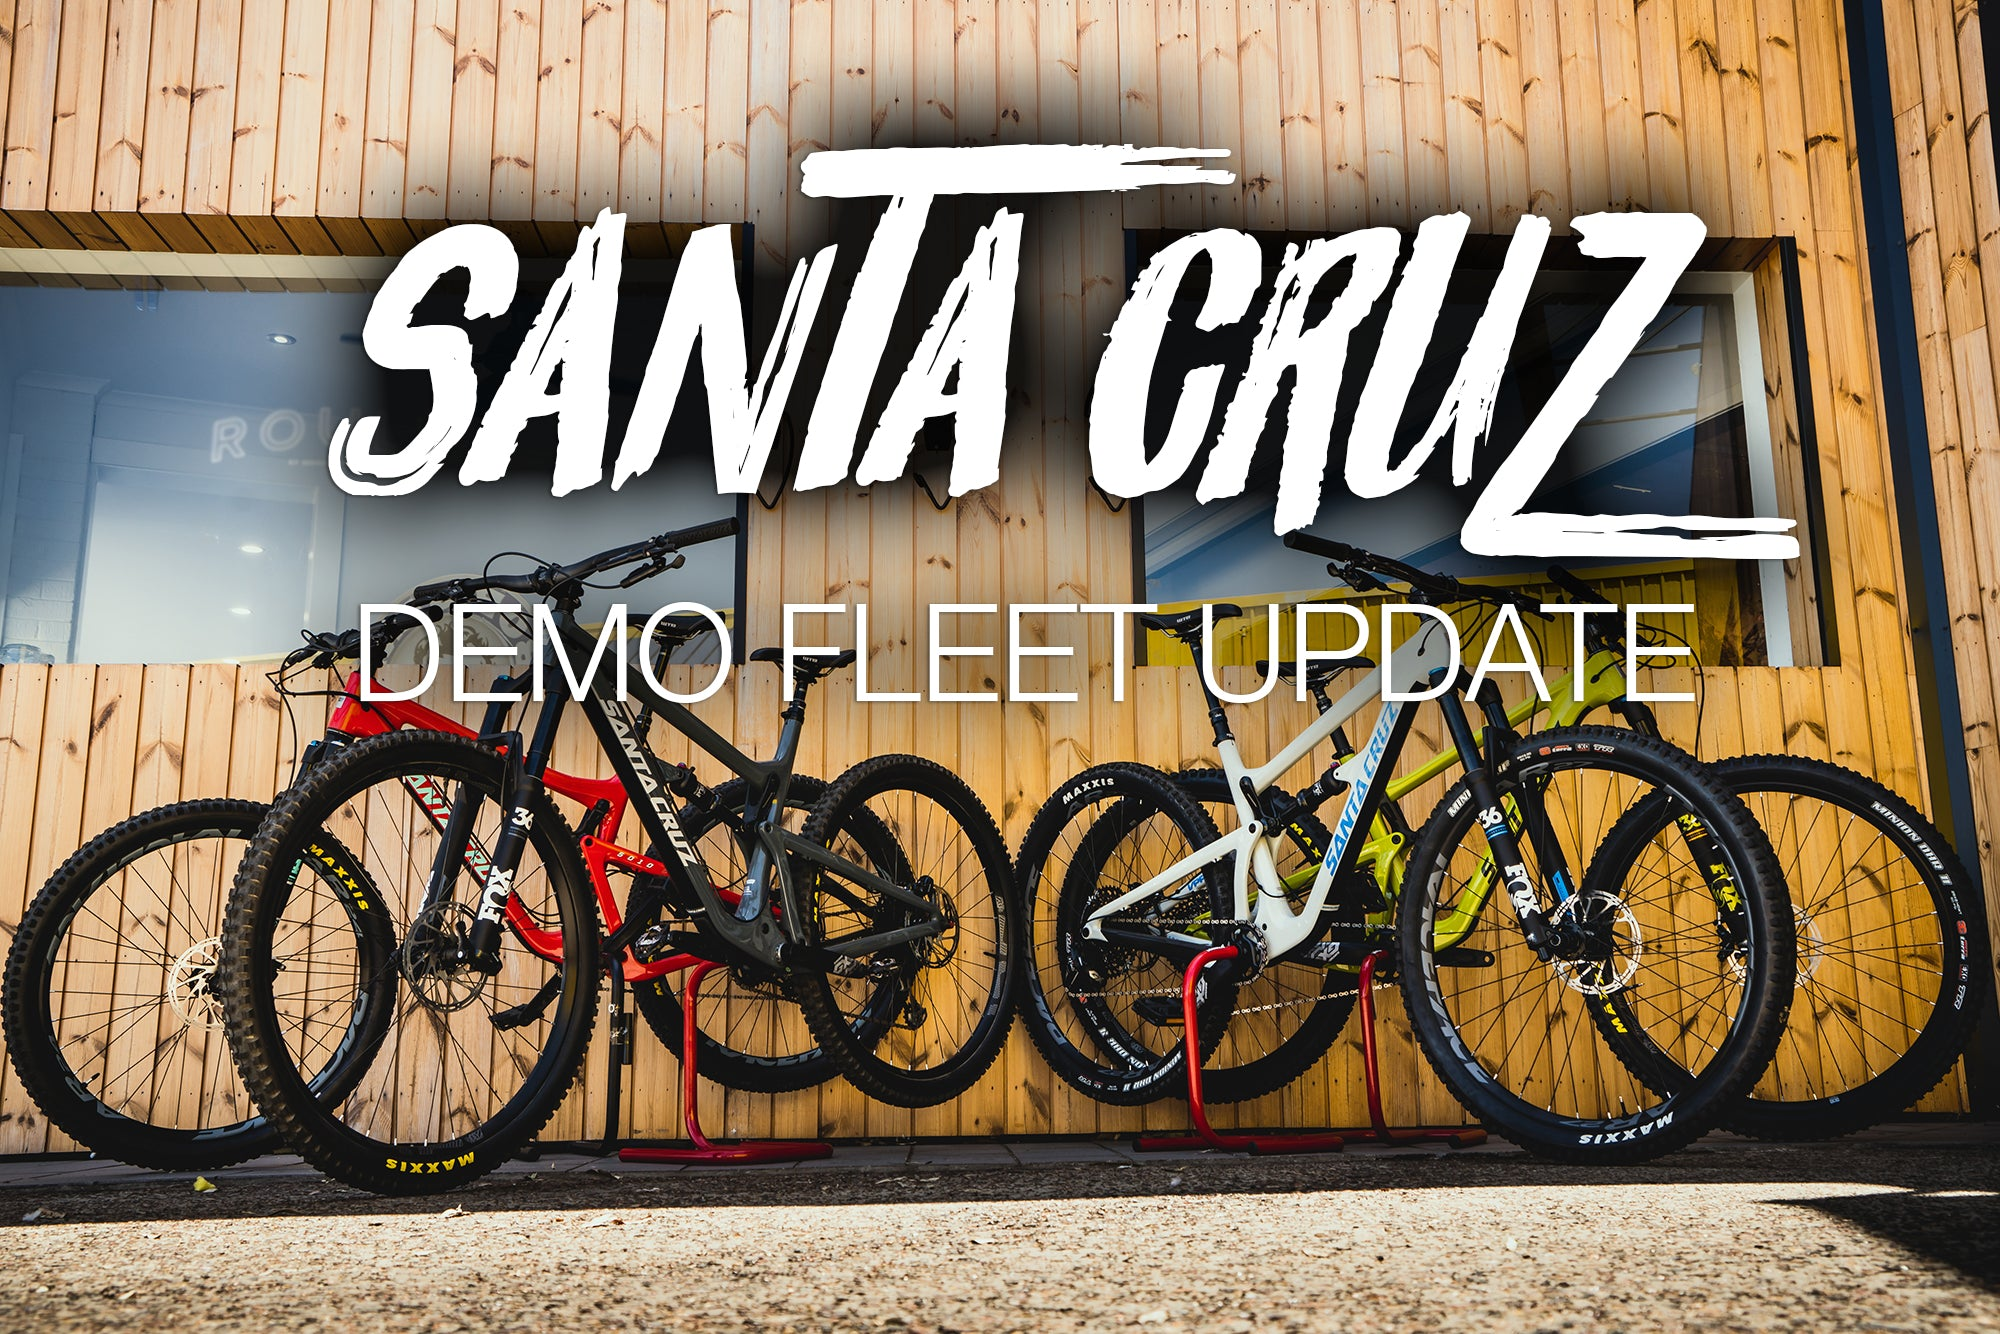 2018 Santa Cruz Demo Fleet Now in store